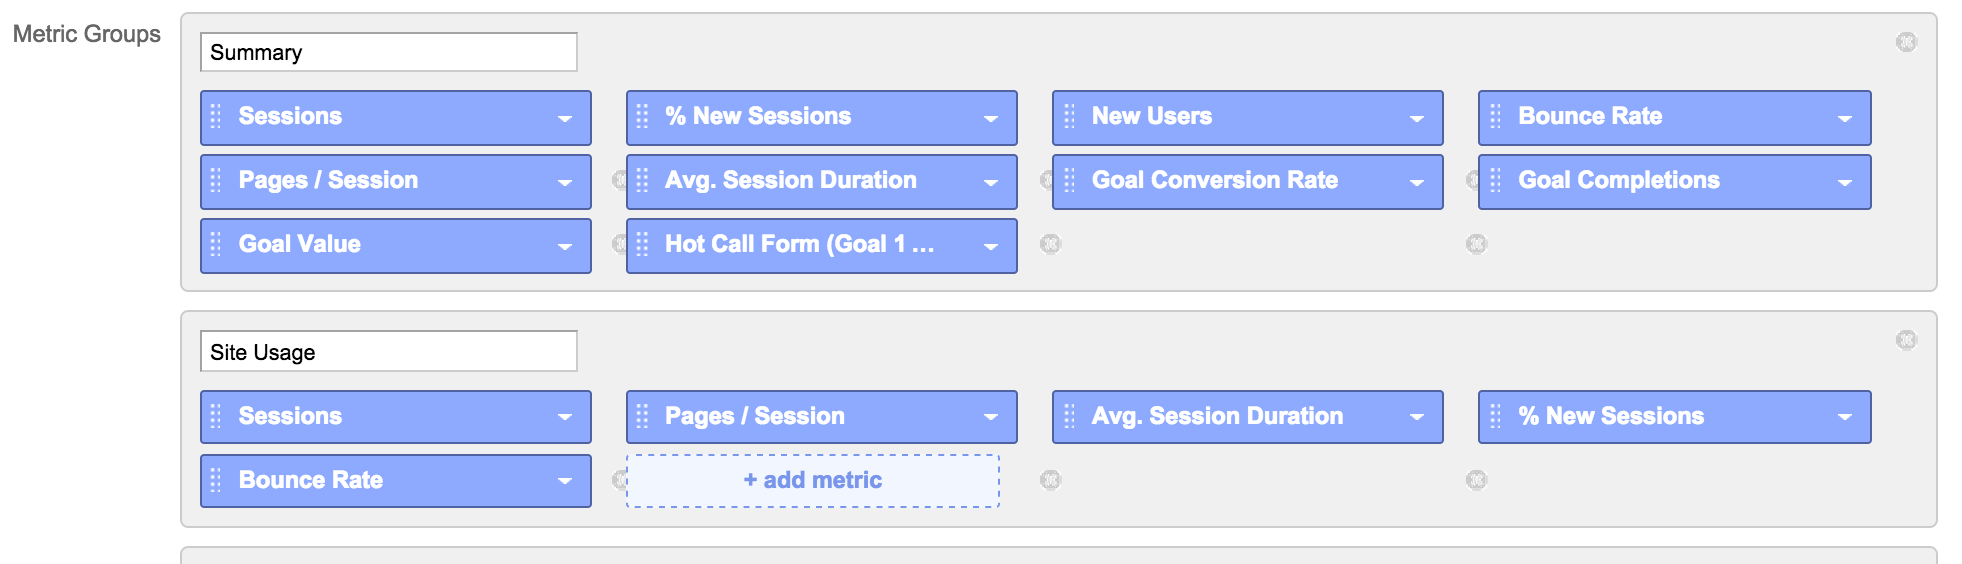 custom reports in google analytics step 2